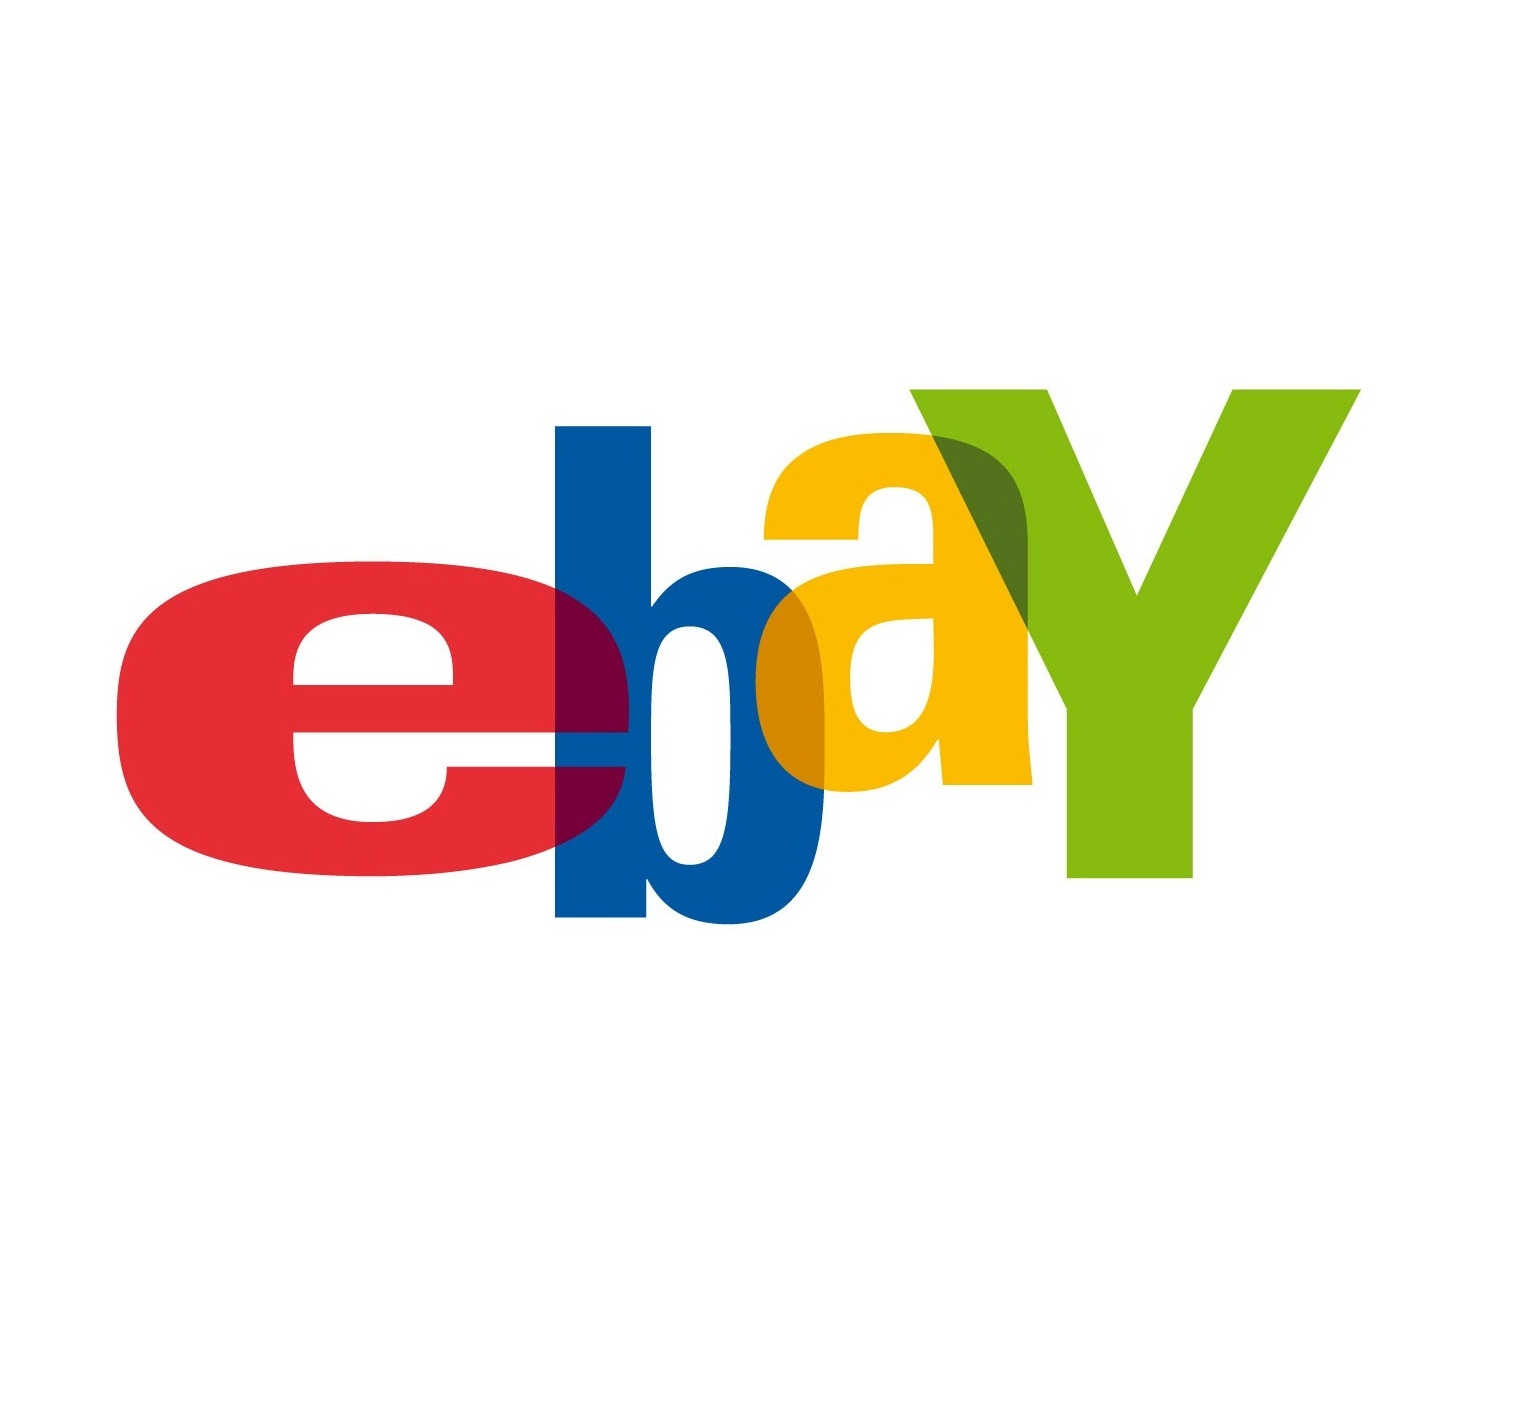 ebay-customer-service-contact-phone-number